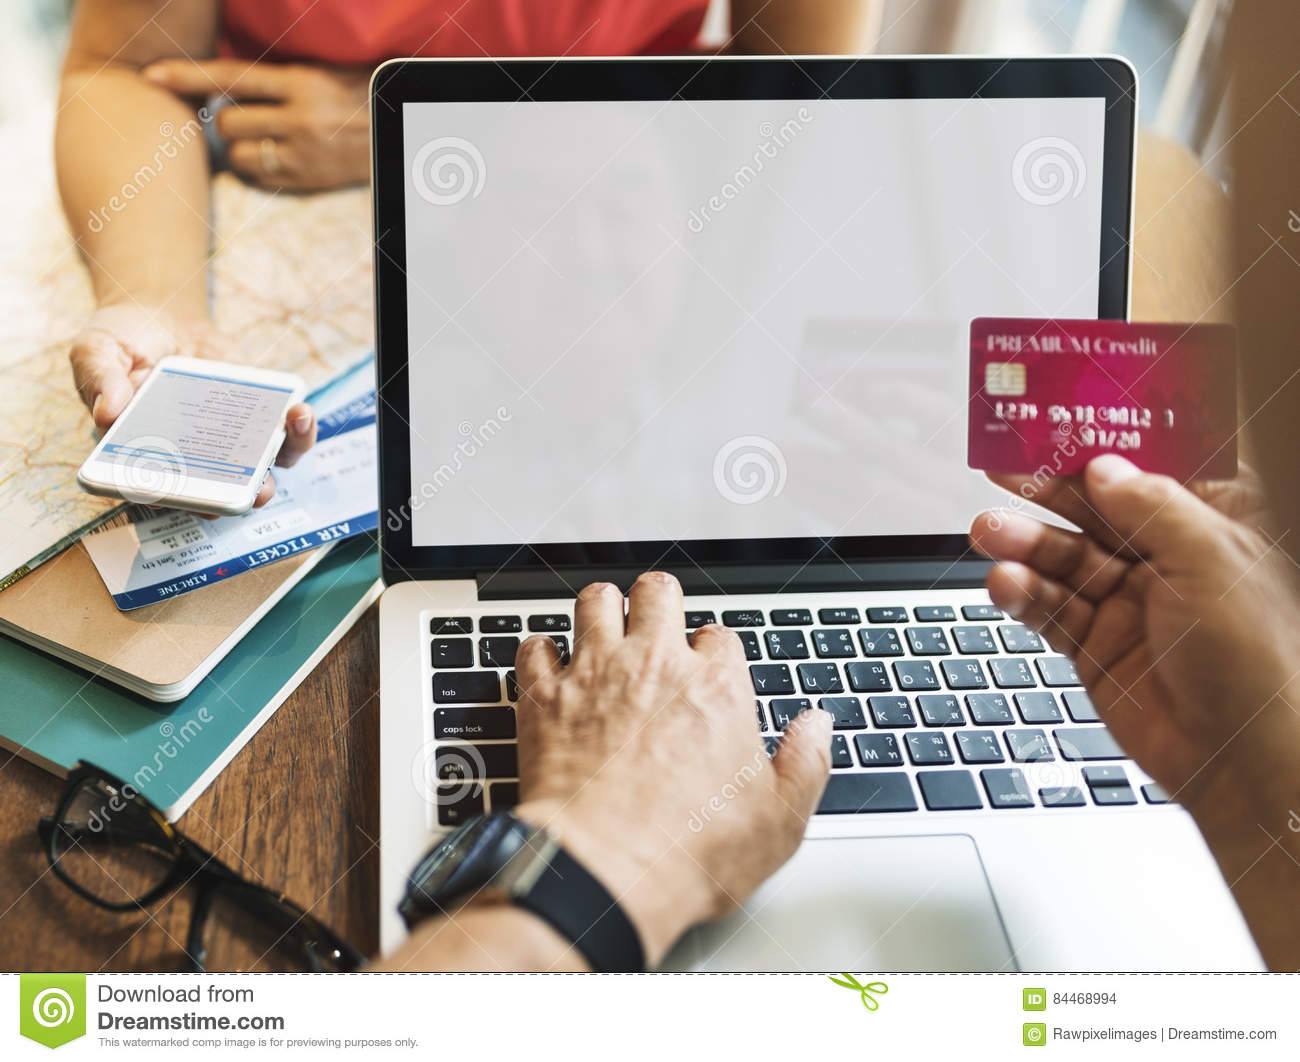 Shopping credit cards, also known as catalog credit cards, are created for those who prefer shopping online to in-store shopping. These credit cards are good for consumers with poor or bad credit history.